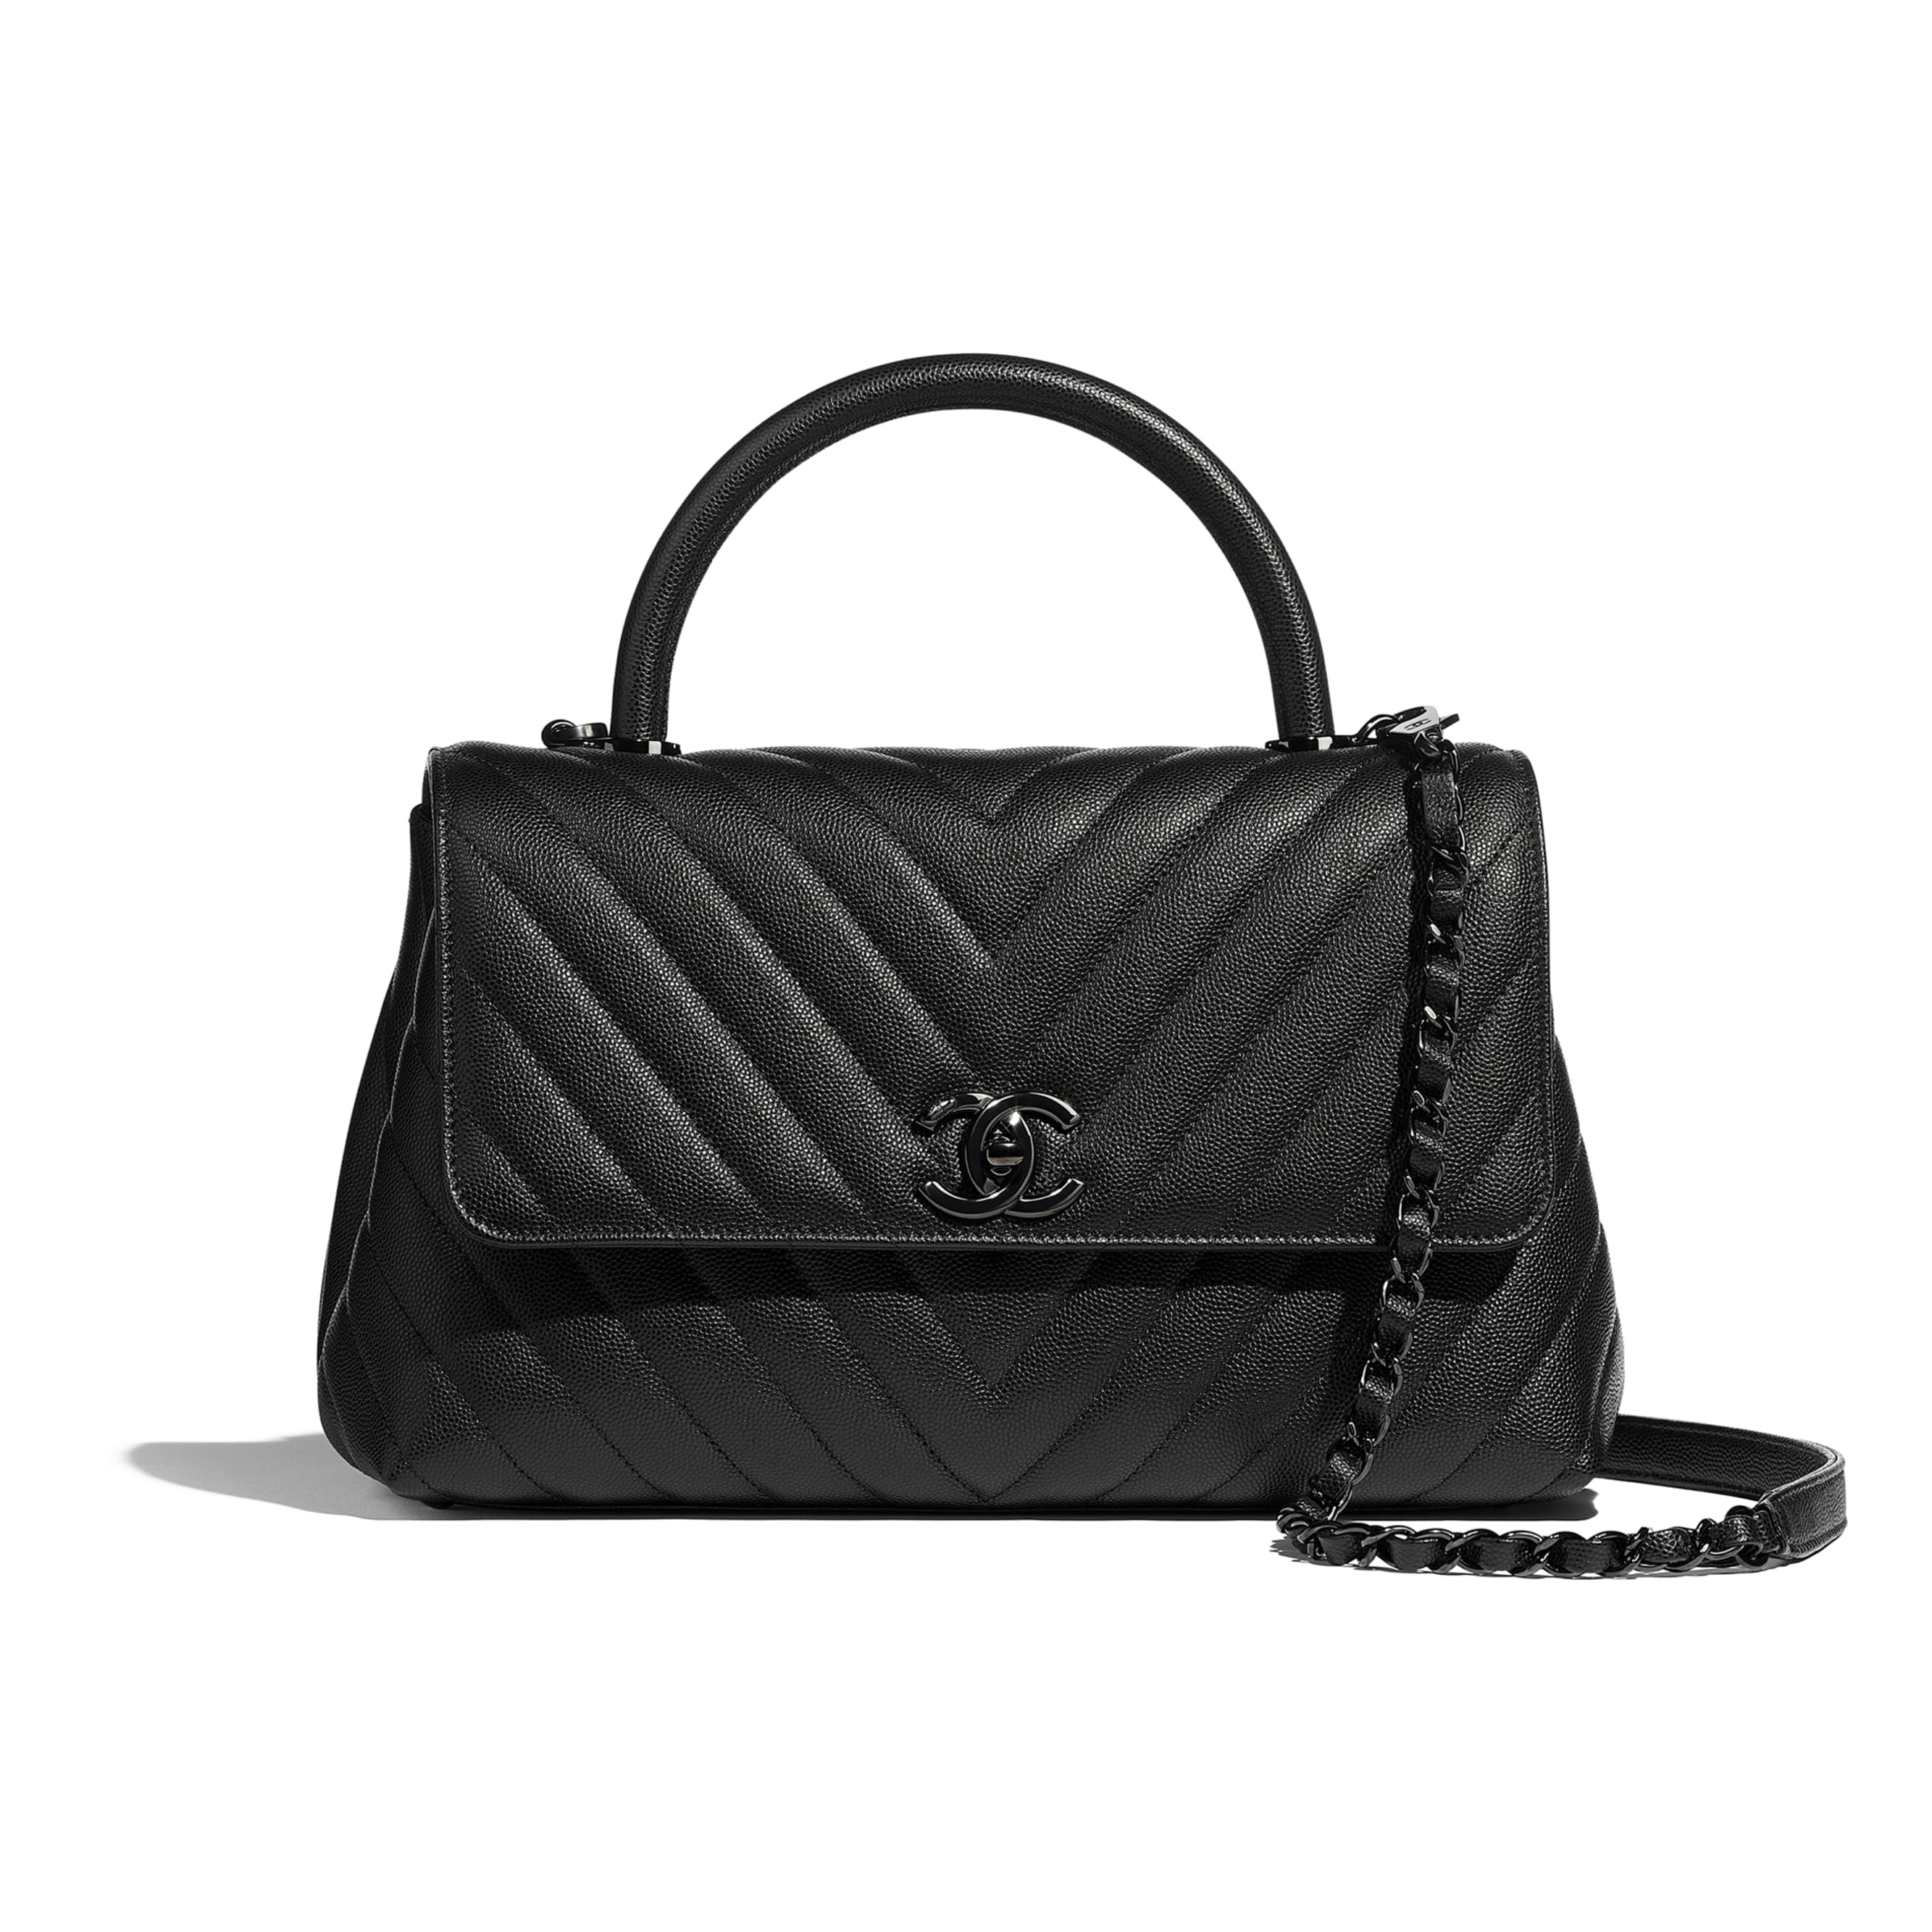 Flap Bag With Top Handle - Black - Grained Calfskin & Black Metal - Default view - see standard sized version